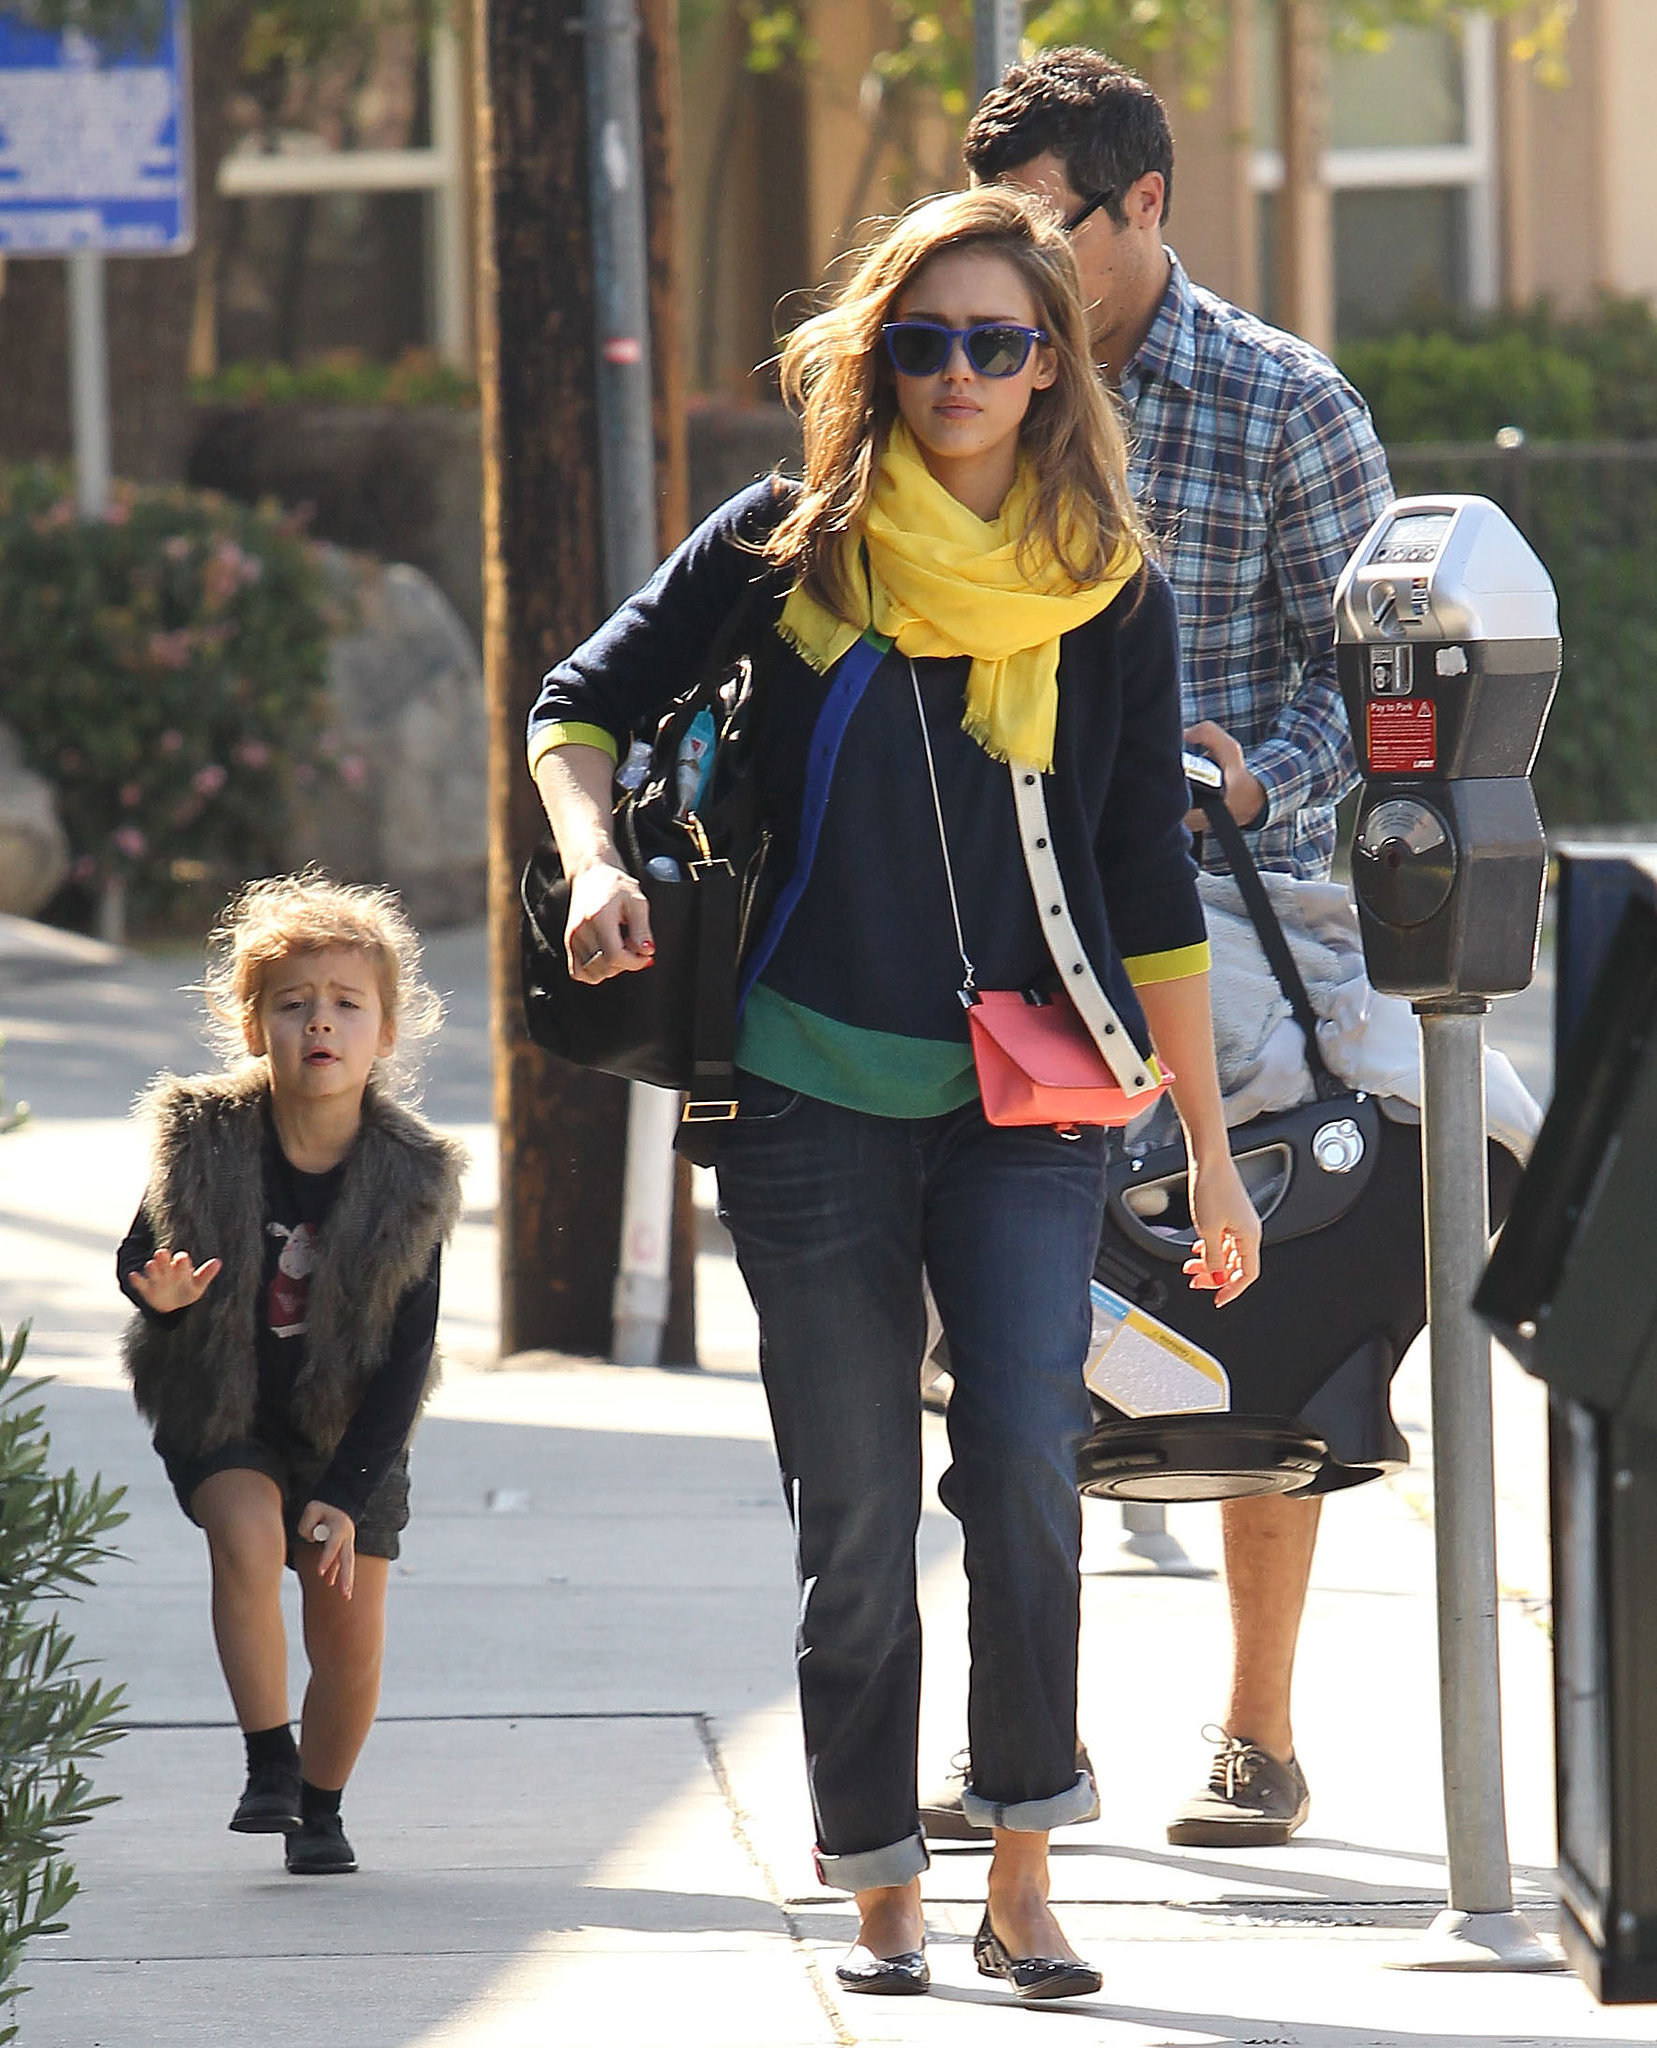 For Jessica's family lunch in LA's Brentwood, it was all about bright pops of color. The actress went casual in cuffed boyfriend jeans, a colorblock sweater, and bright yellow scarf.